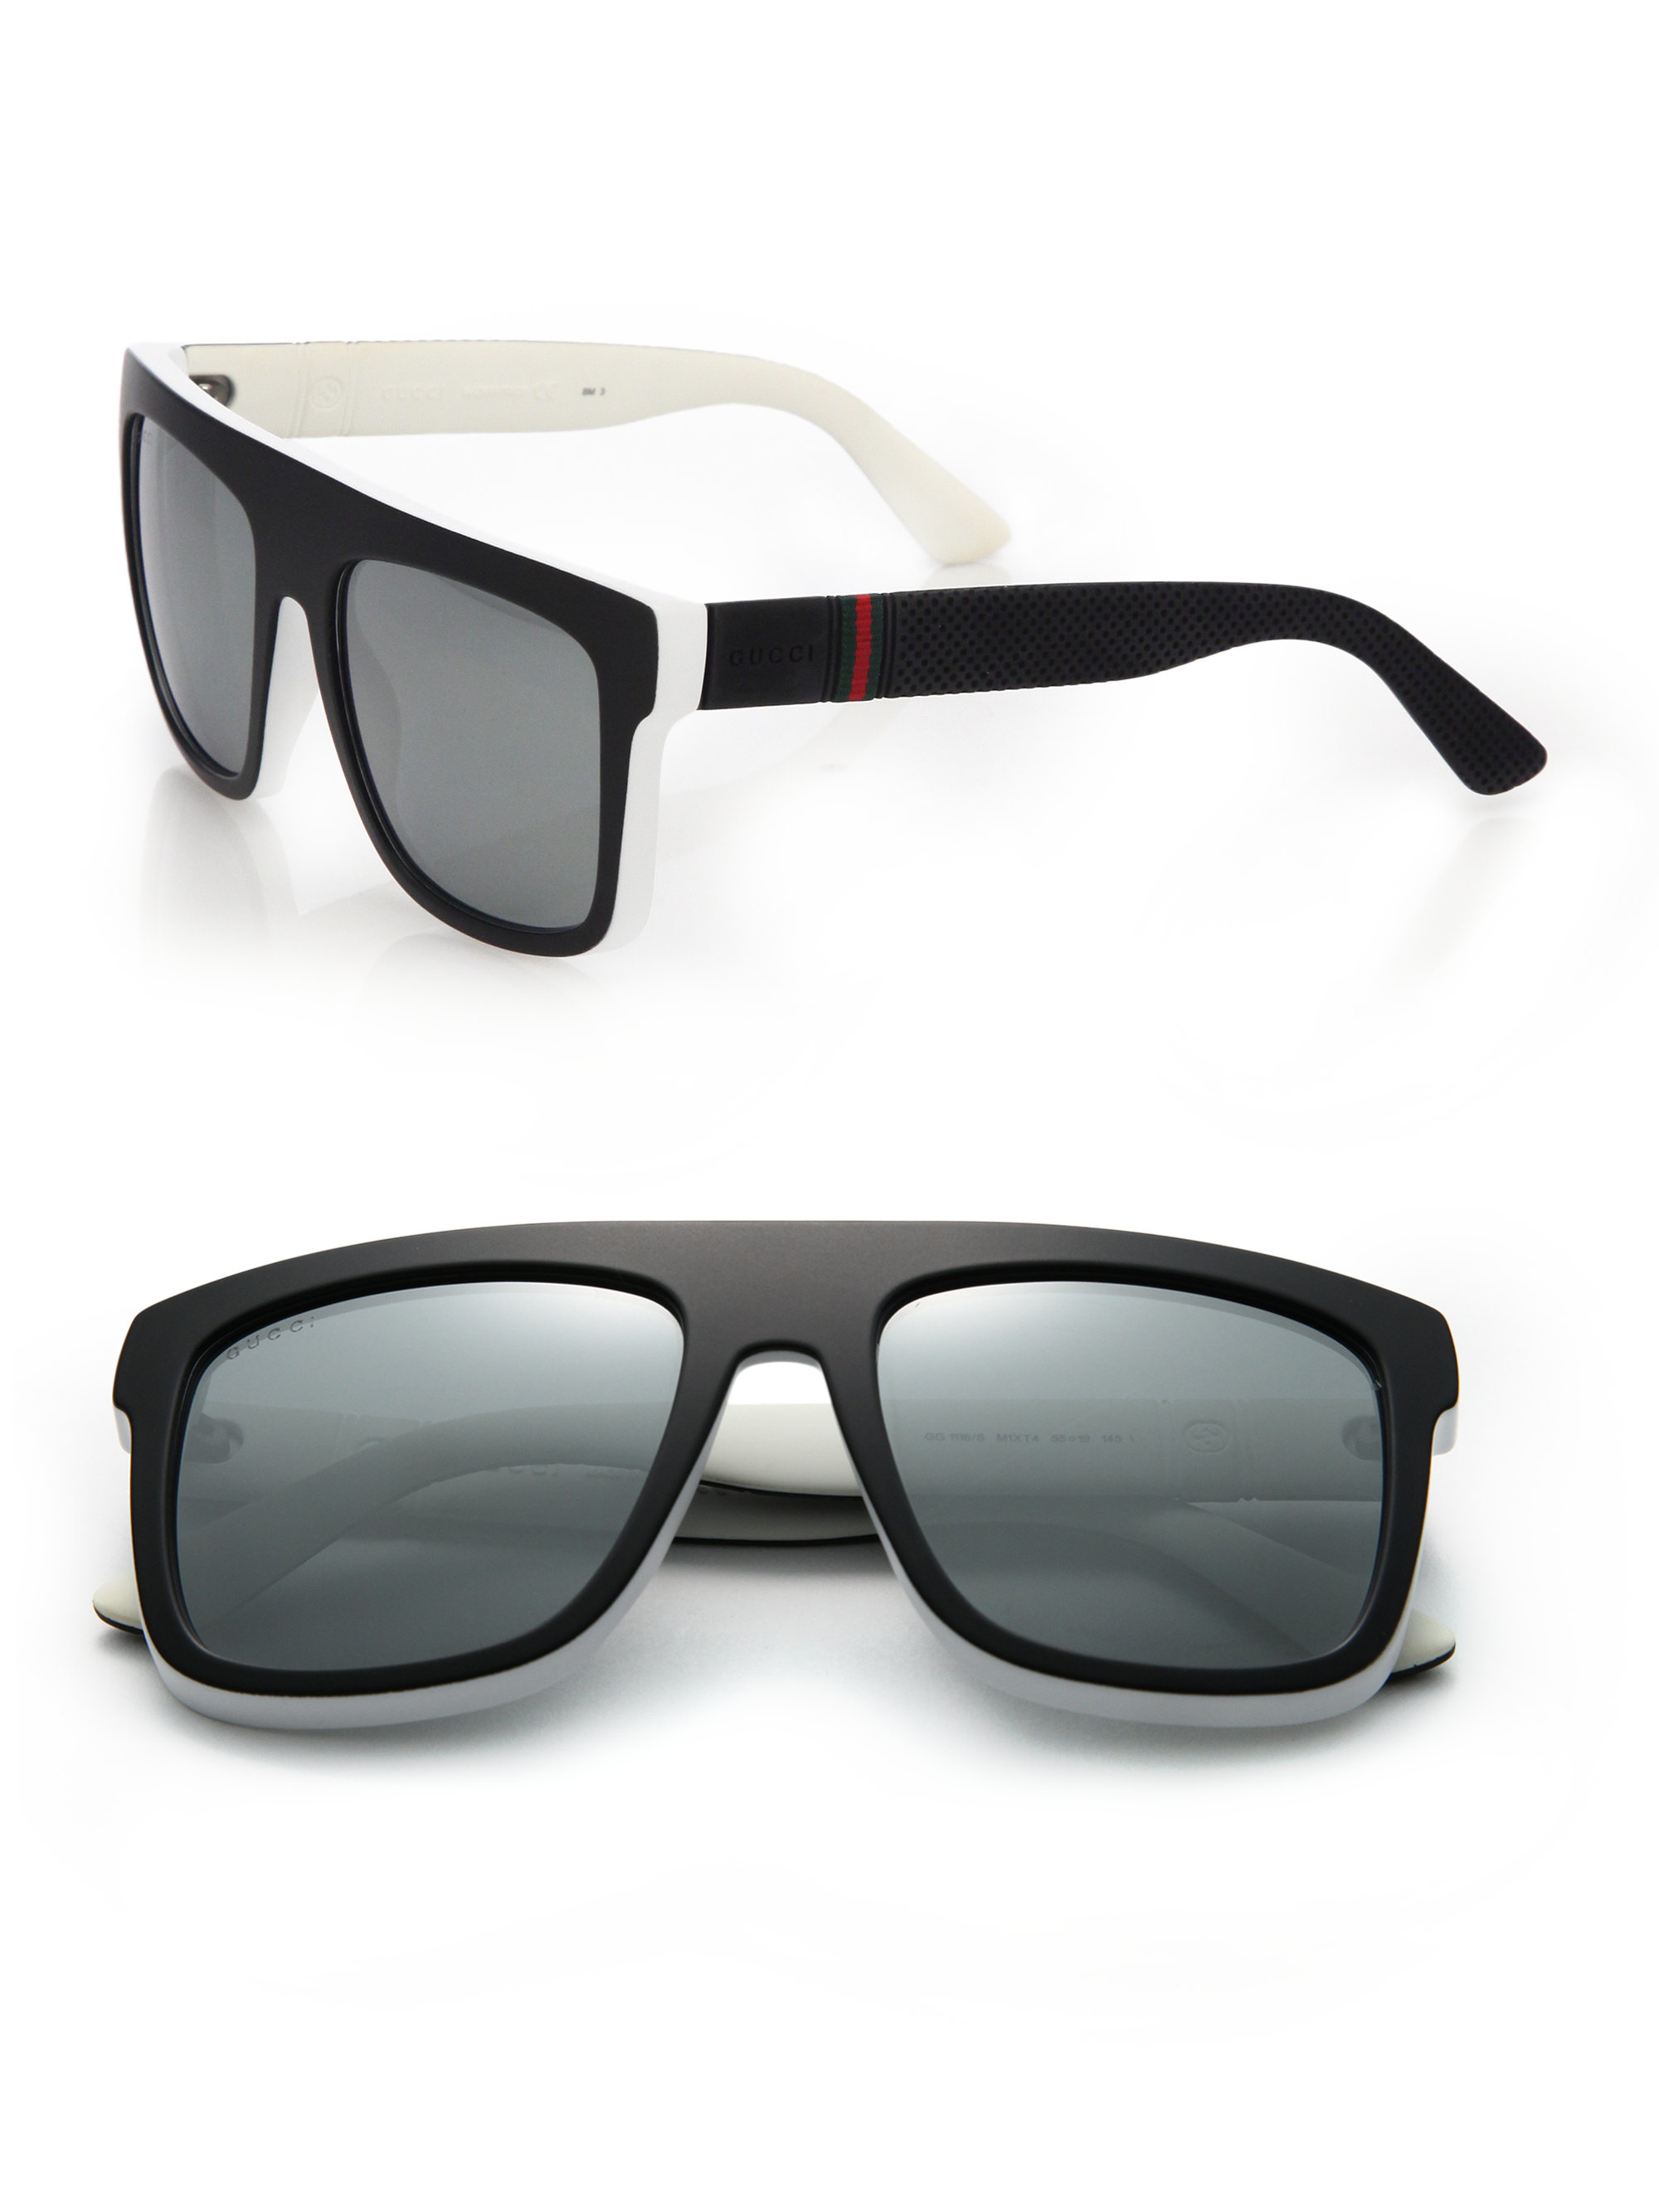 Gucci Mirrored Sunglasses  gucci 1116 s 55mm mirror rectangular sunglasses in black for men